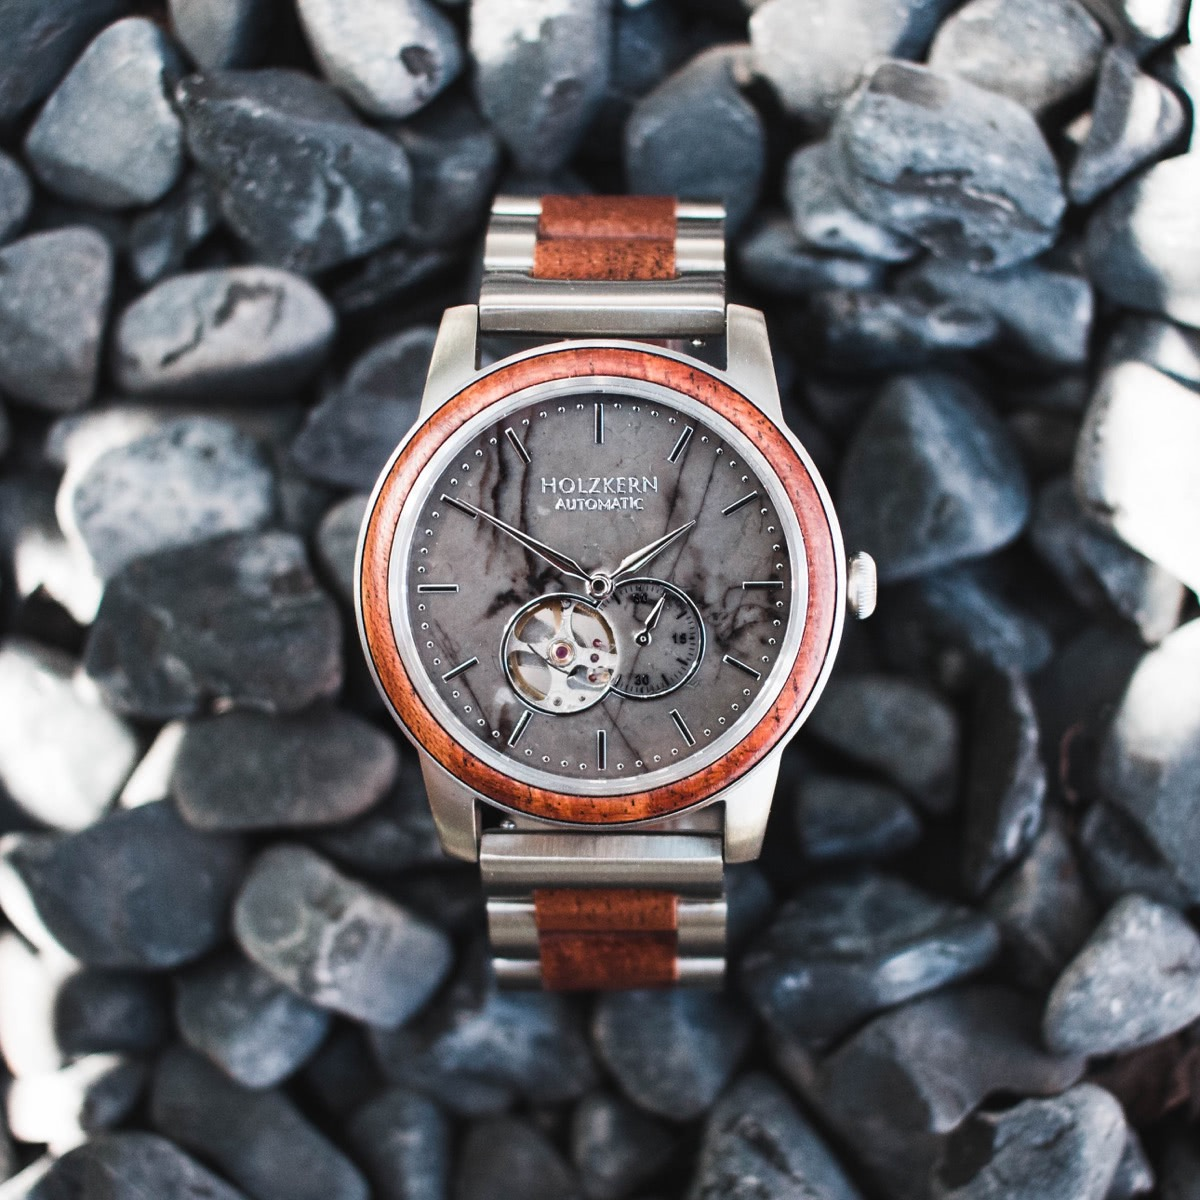 Mens wooden watch Dubai in between stones